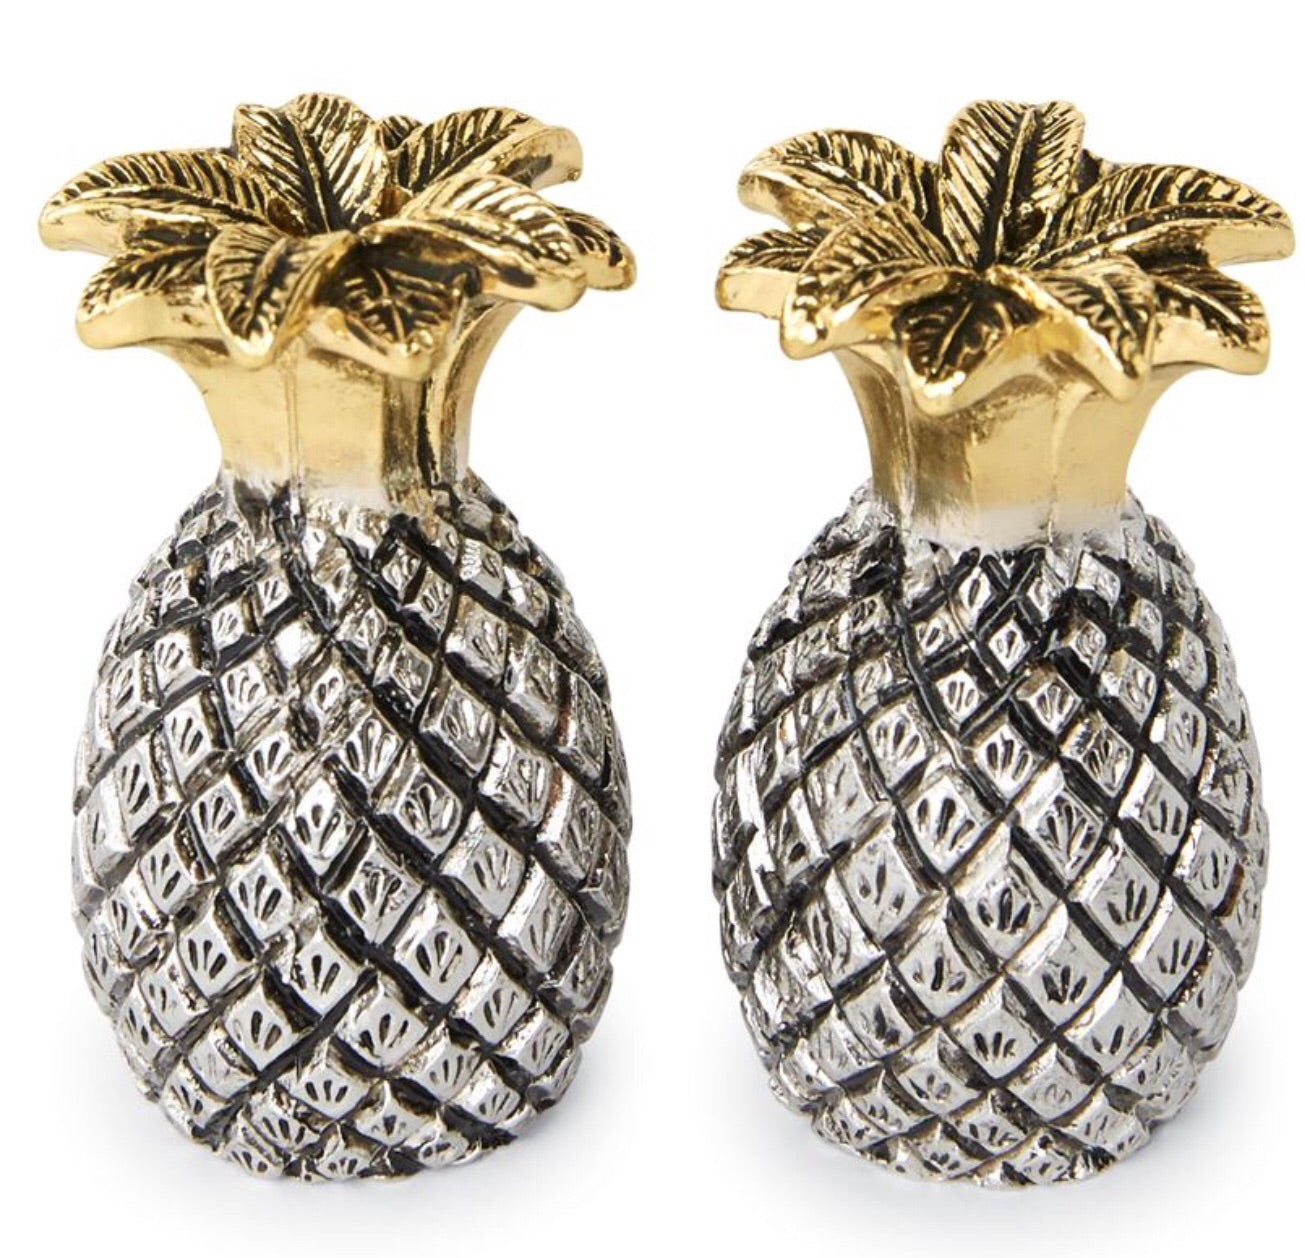 Pineapple salty &pepper shakers